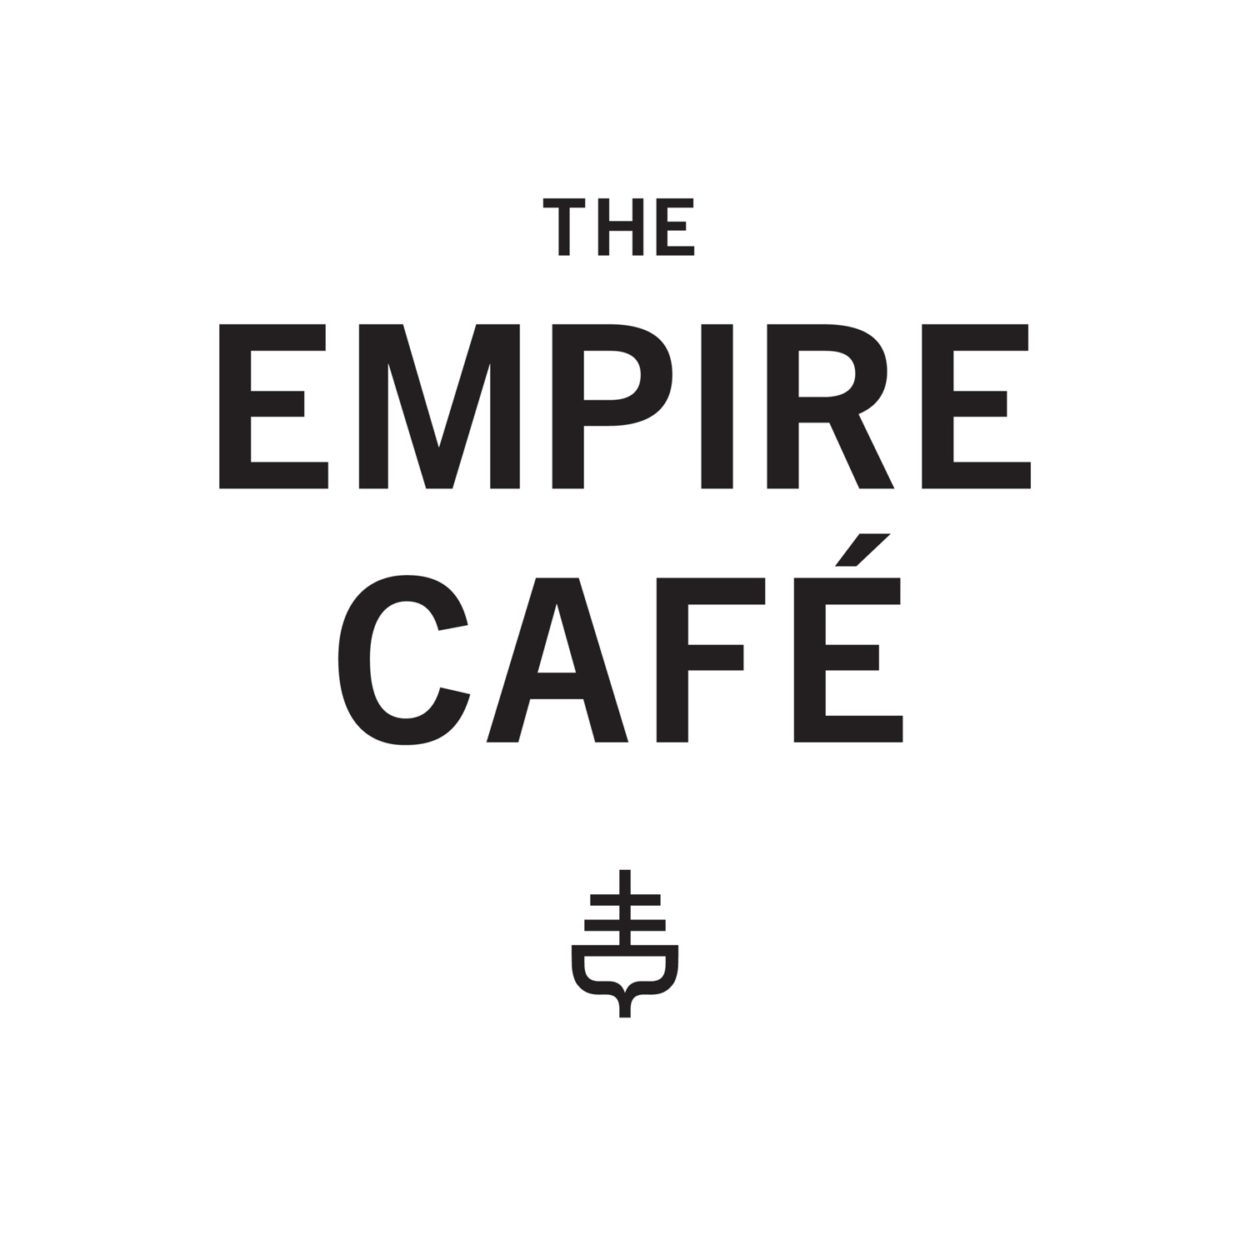 The Empire Cafe